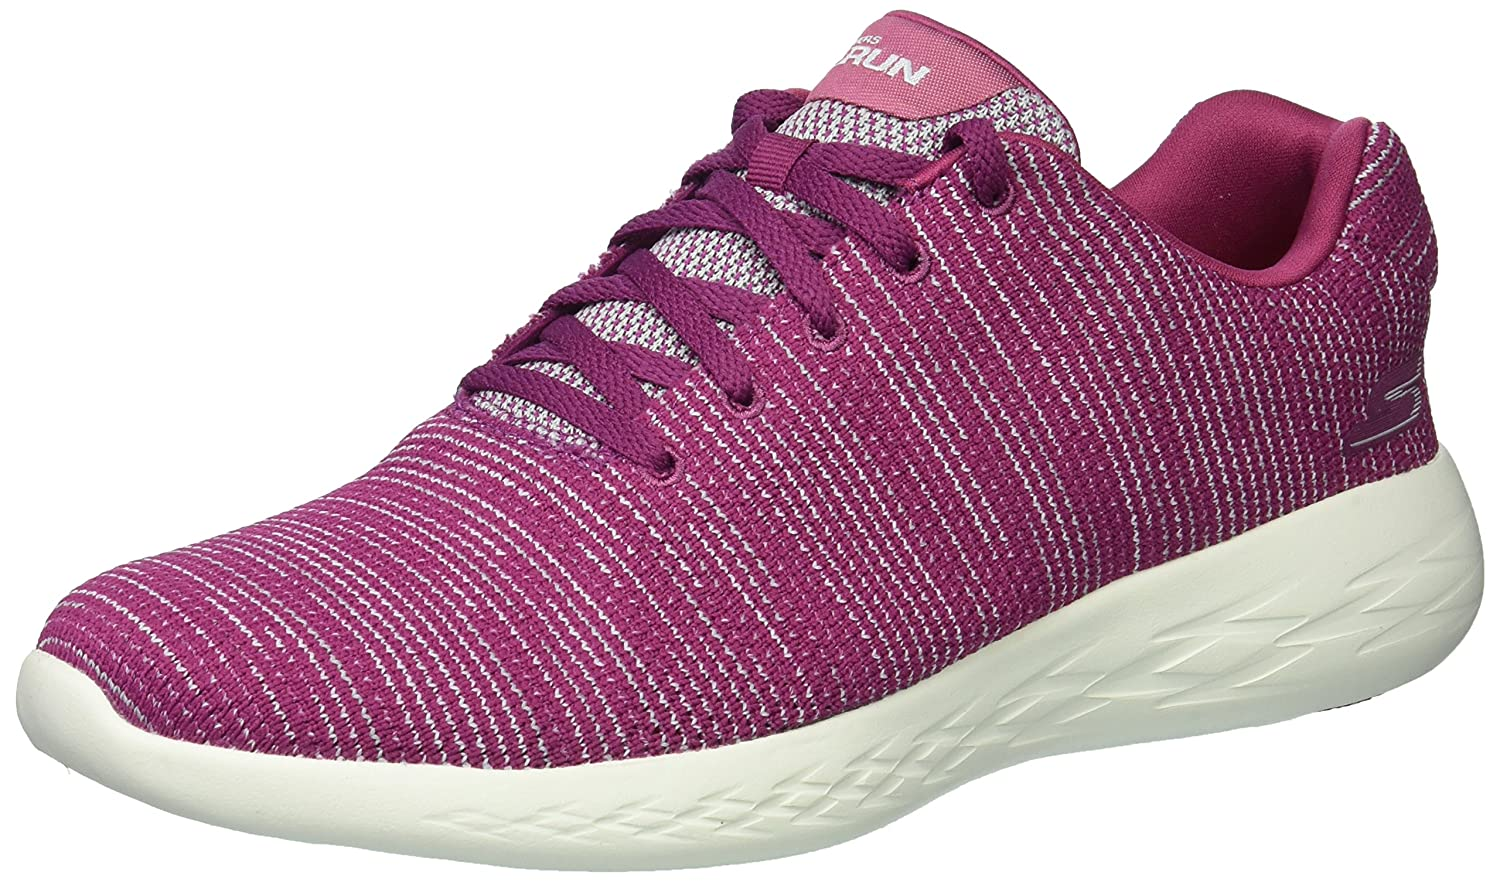 Skechers Women's Go Run 600-Obtain Sneaker B073GGQ3FV 6 B(M) US|Raspberry